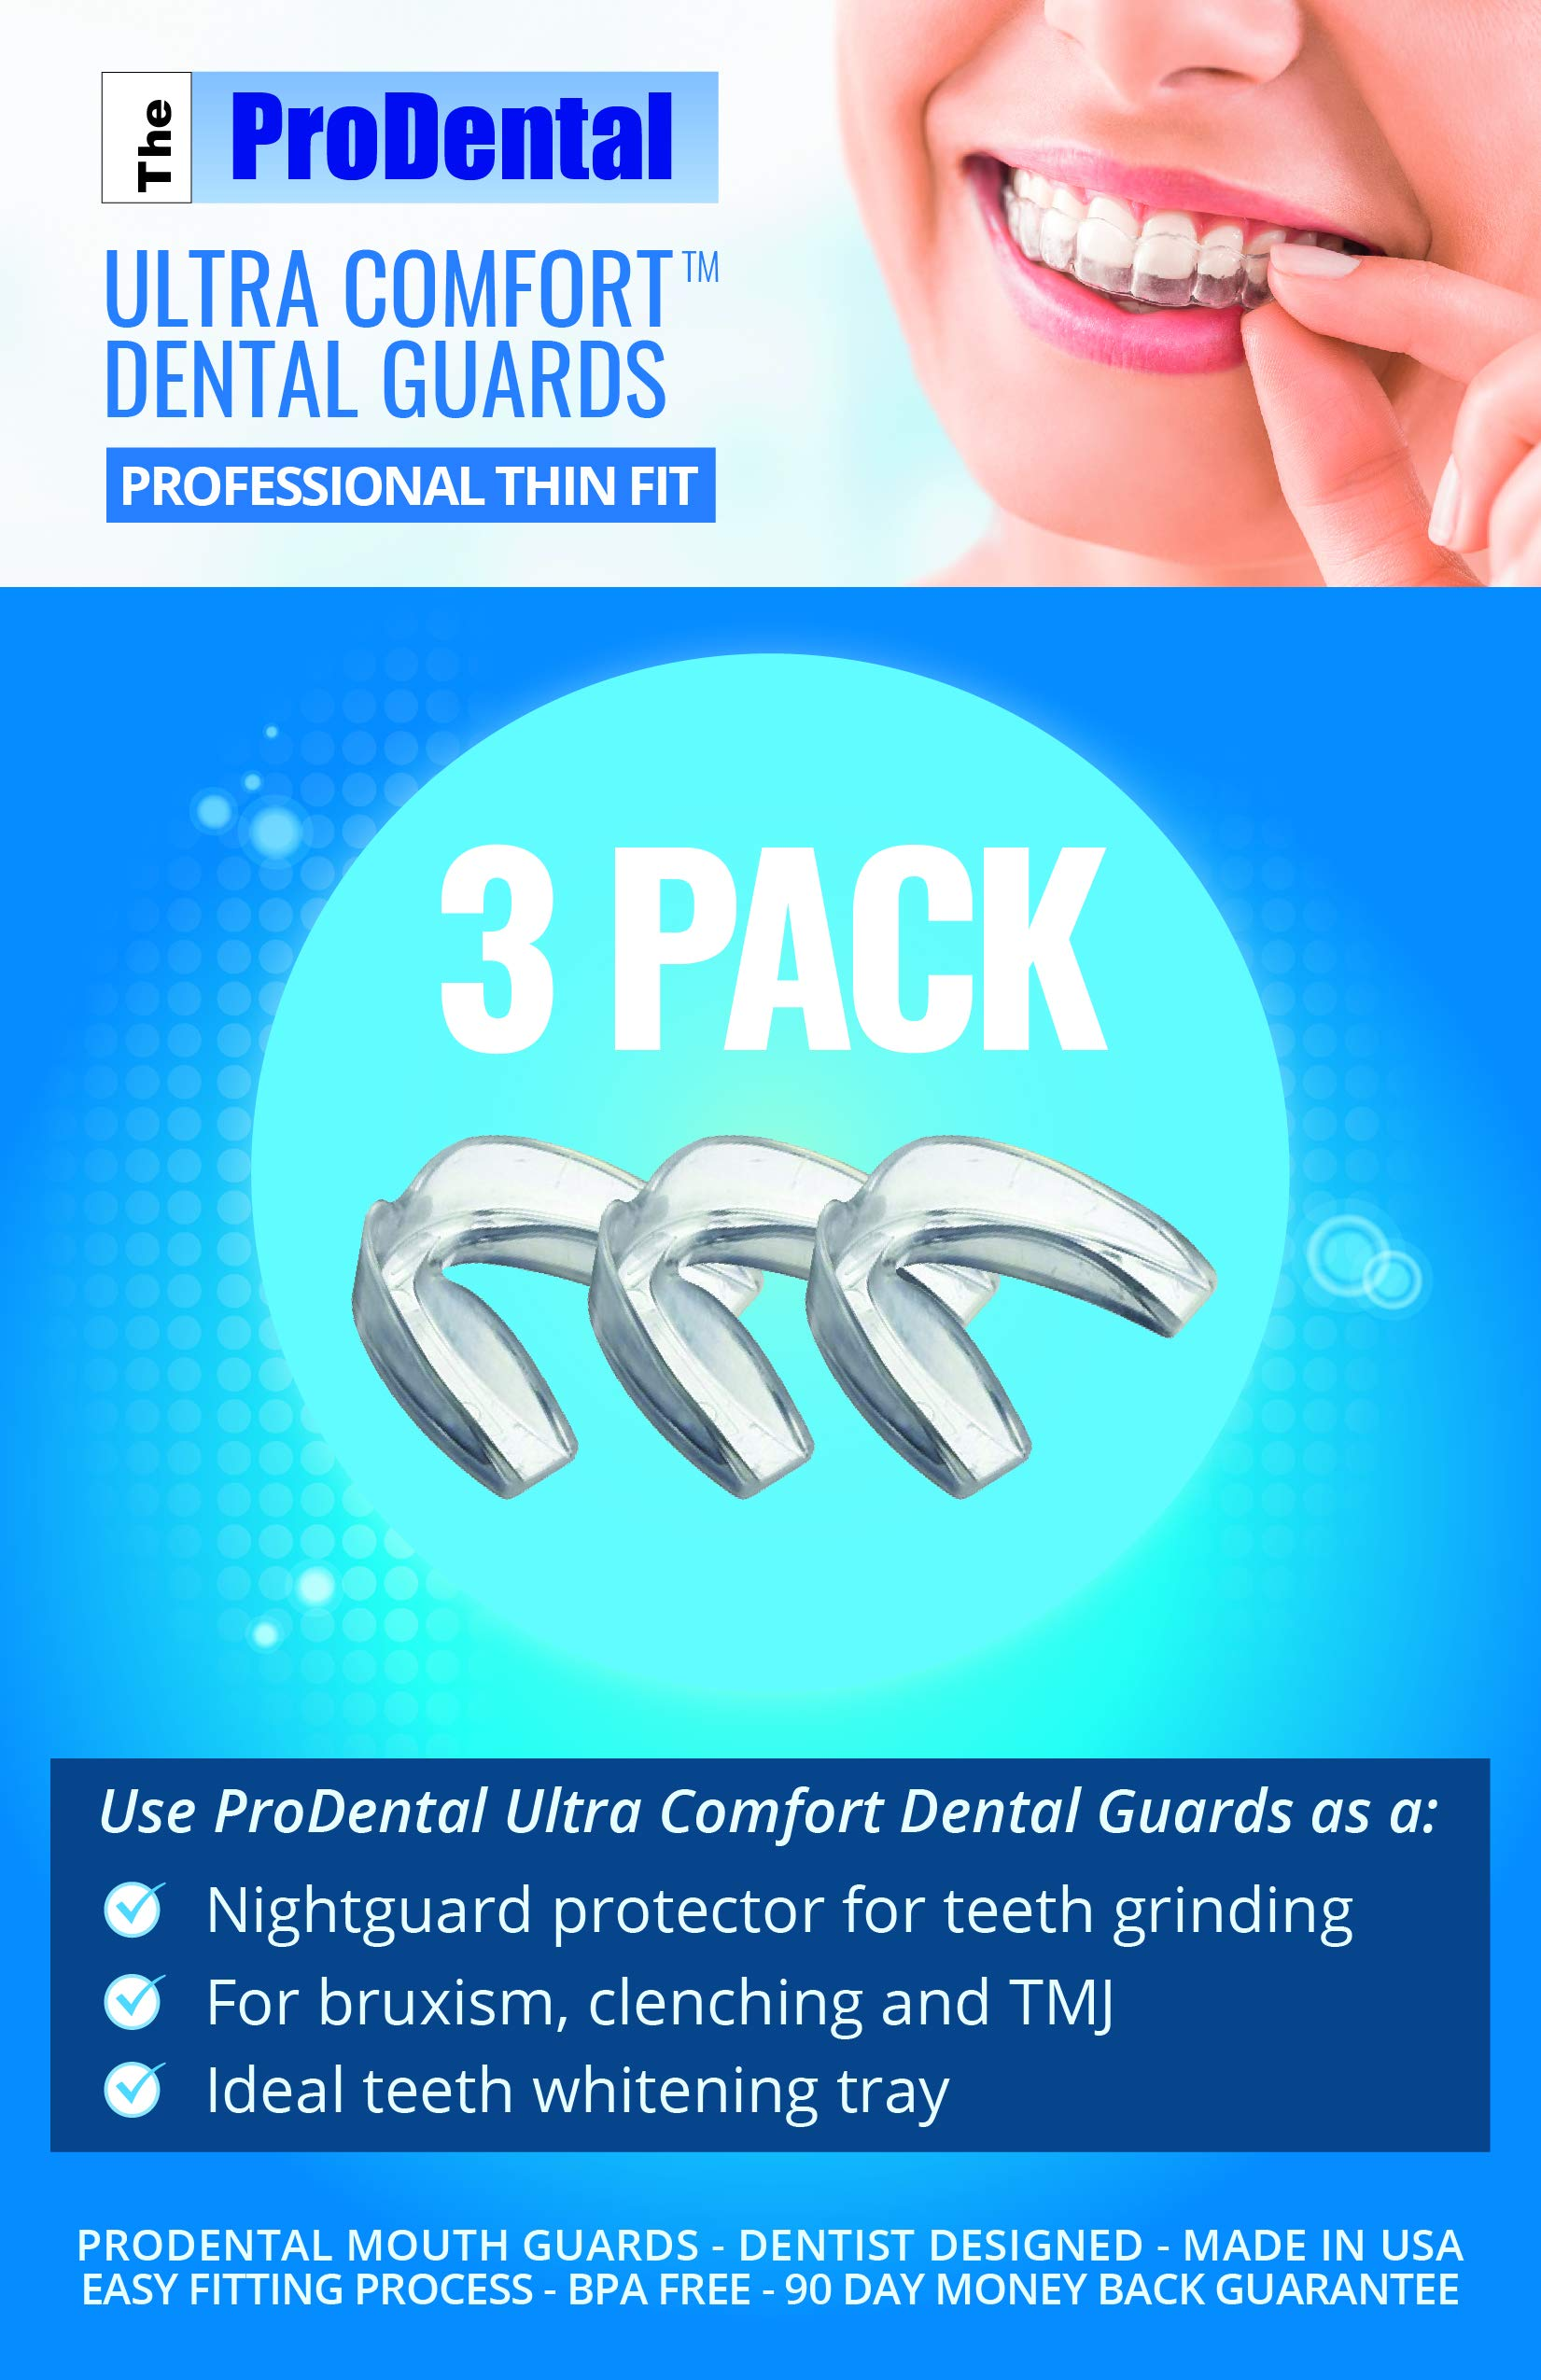 ProDental Thin and Trim Mouth Guard for Grinding Teeth - 3 Pack, Made in USA | Night Guard Stops Bruxism - Teeth Clenching | Use as Customizable Teeth Whitening Dental Guard | FDA Approved Material by ProDental